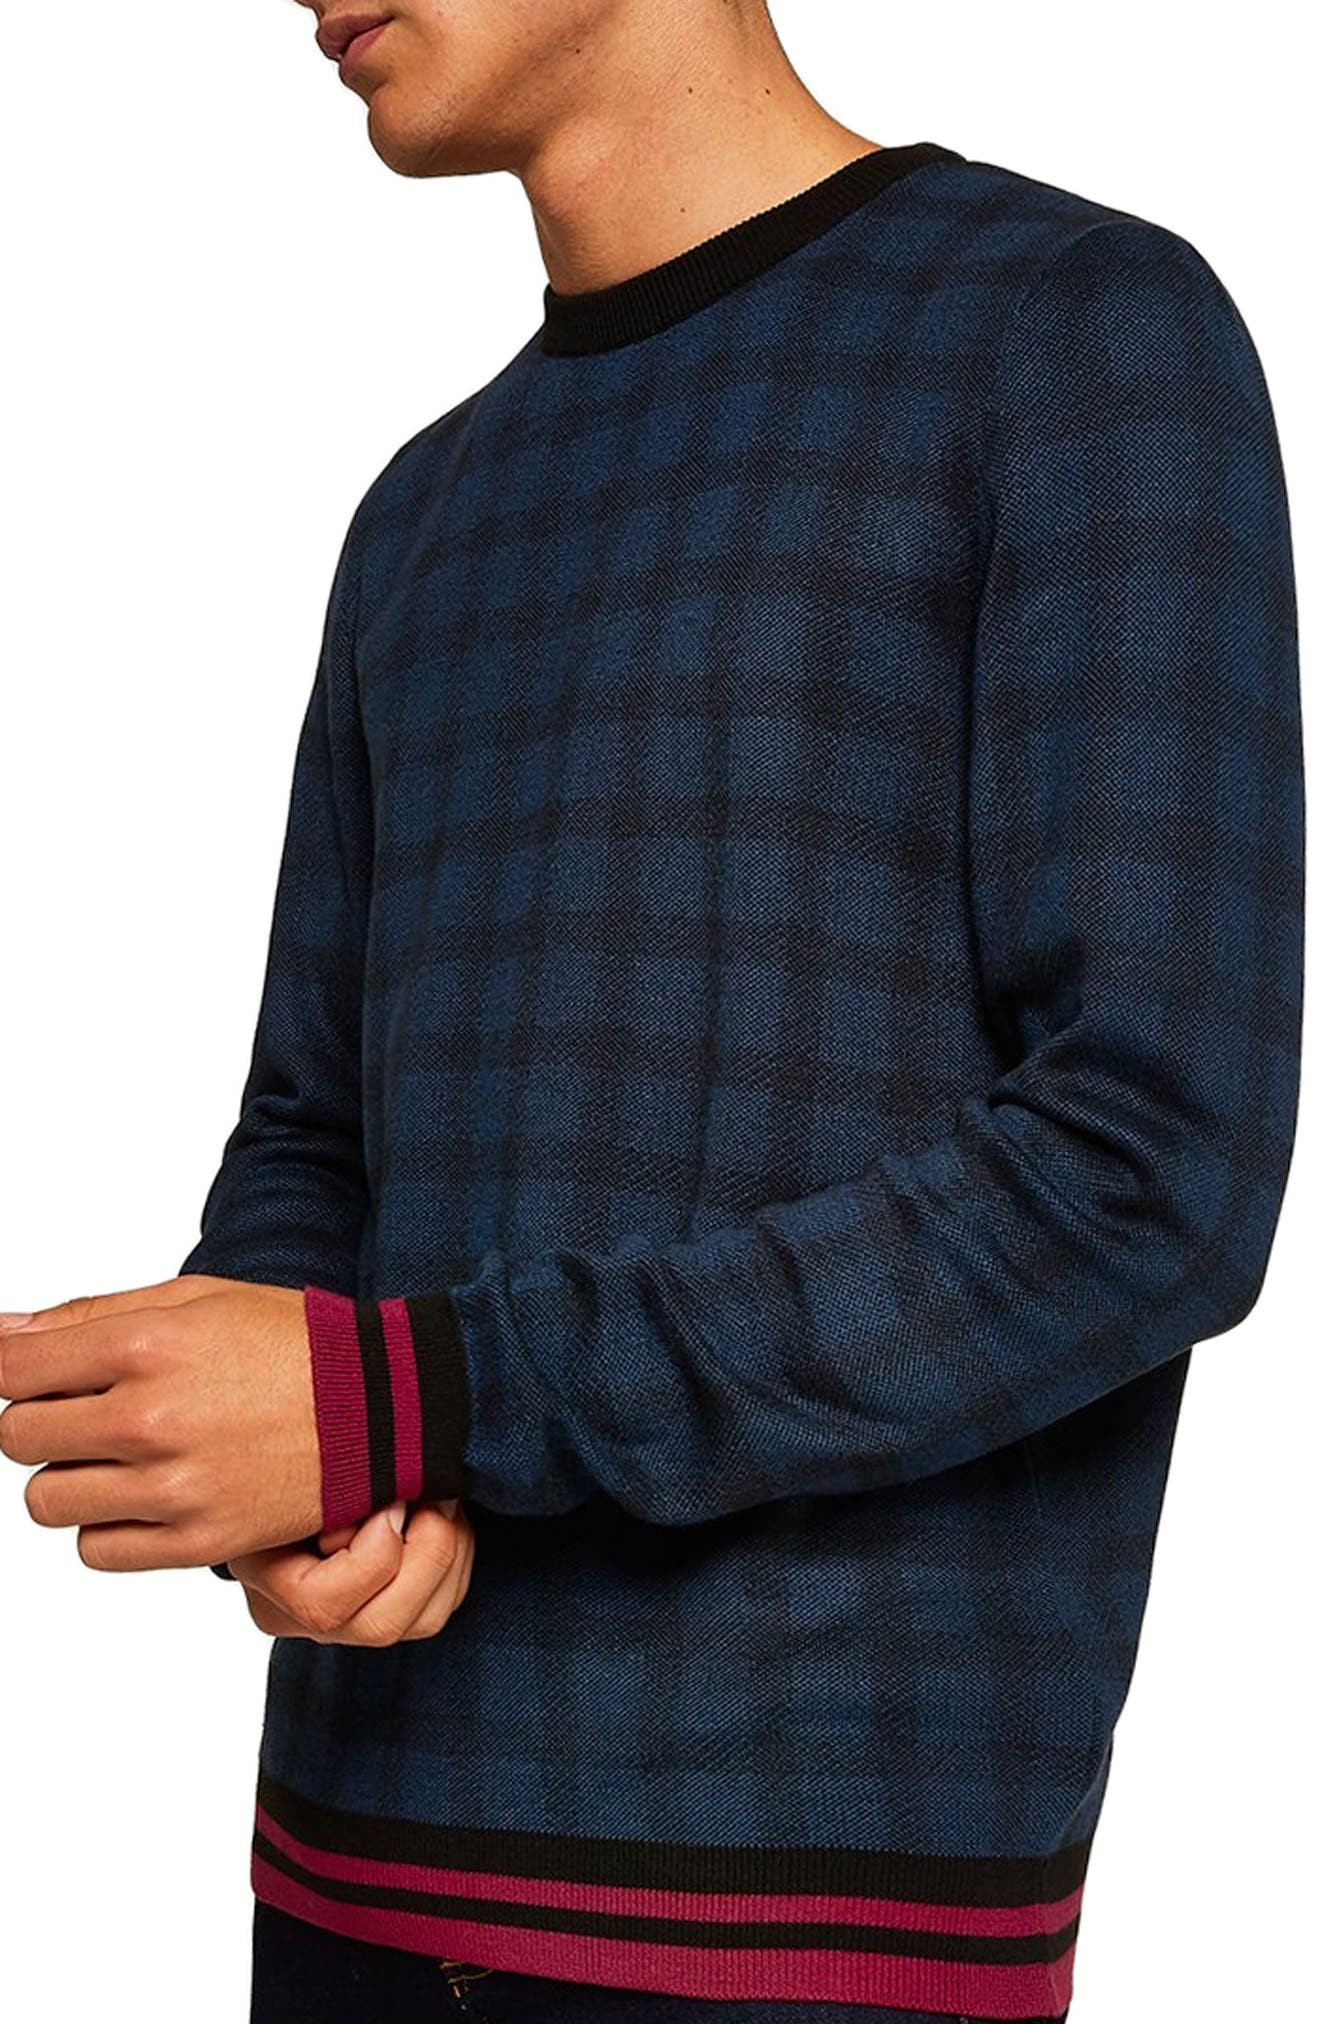 Check Print Classic Fit Sweater,                             Main thumbnail 1, color,                             BLUE MULTI